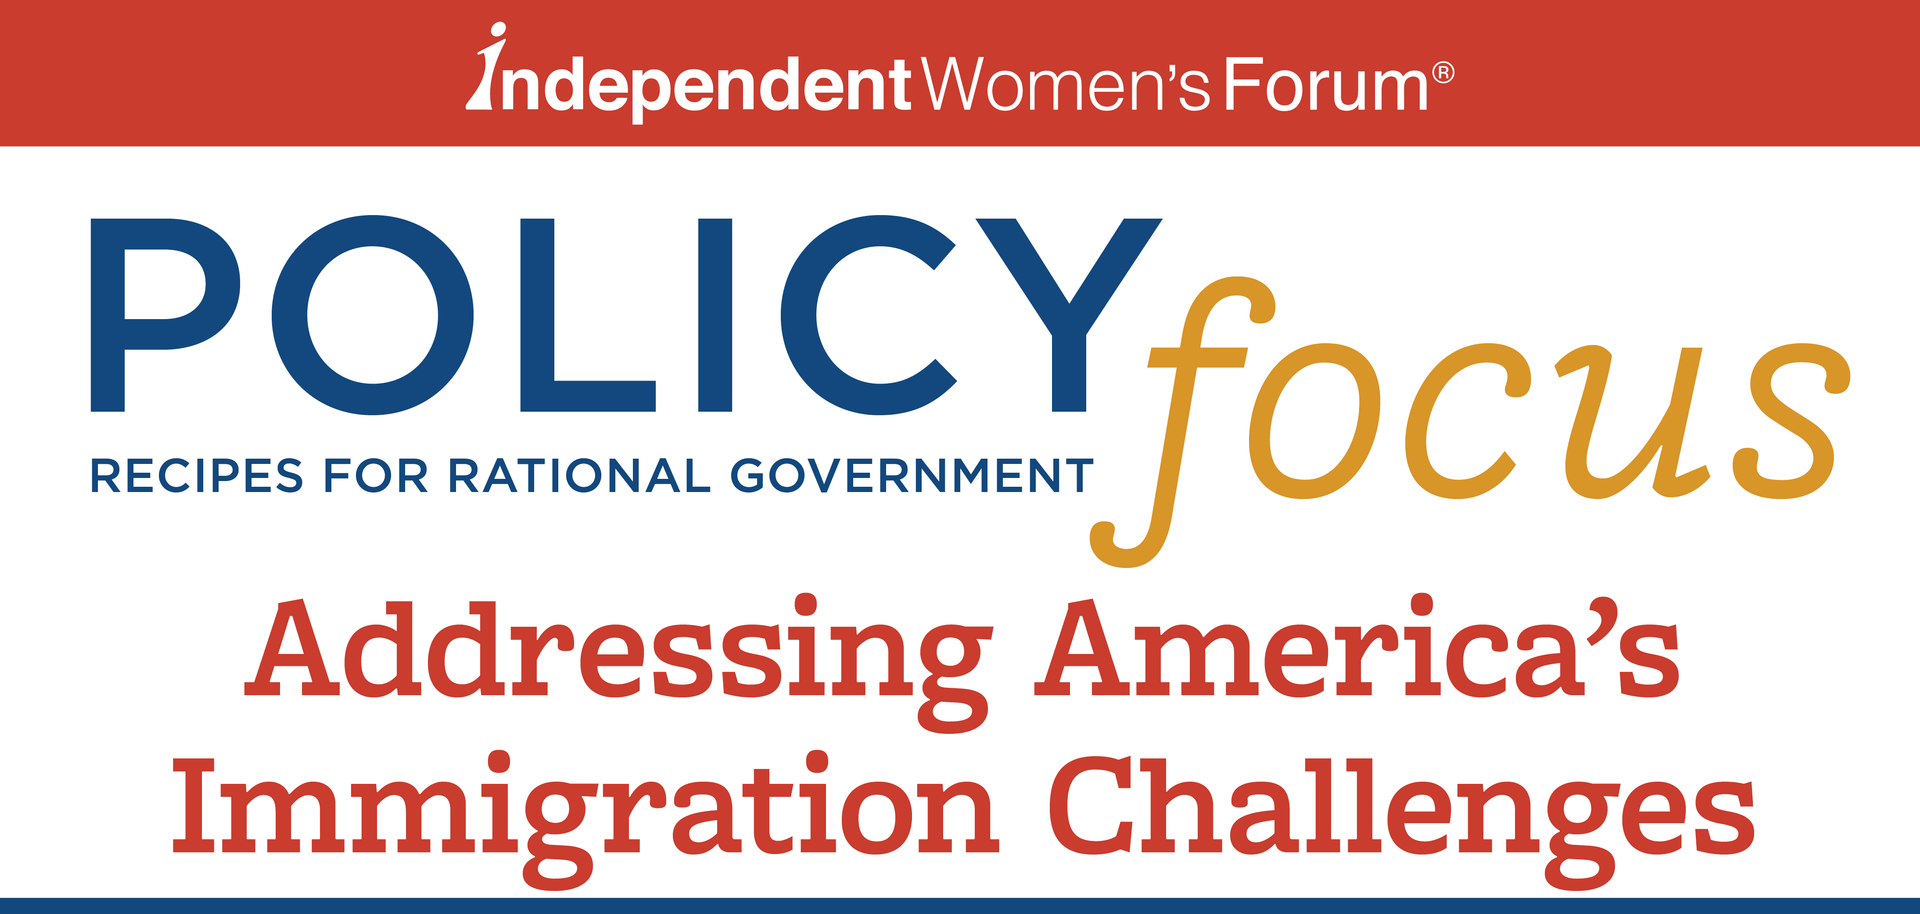 IWF Policy Focus Addressing America's Immigration